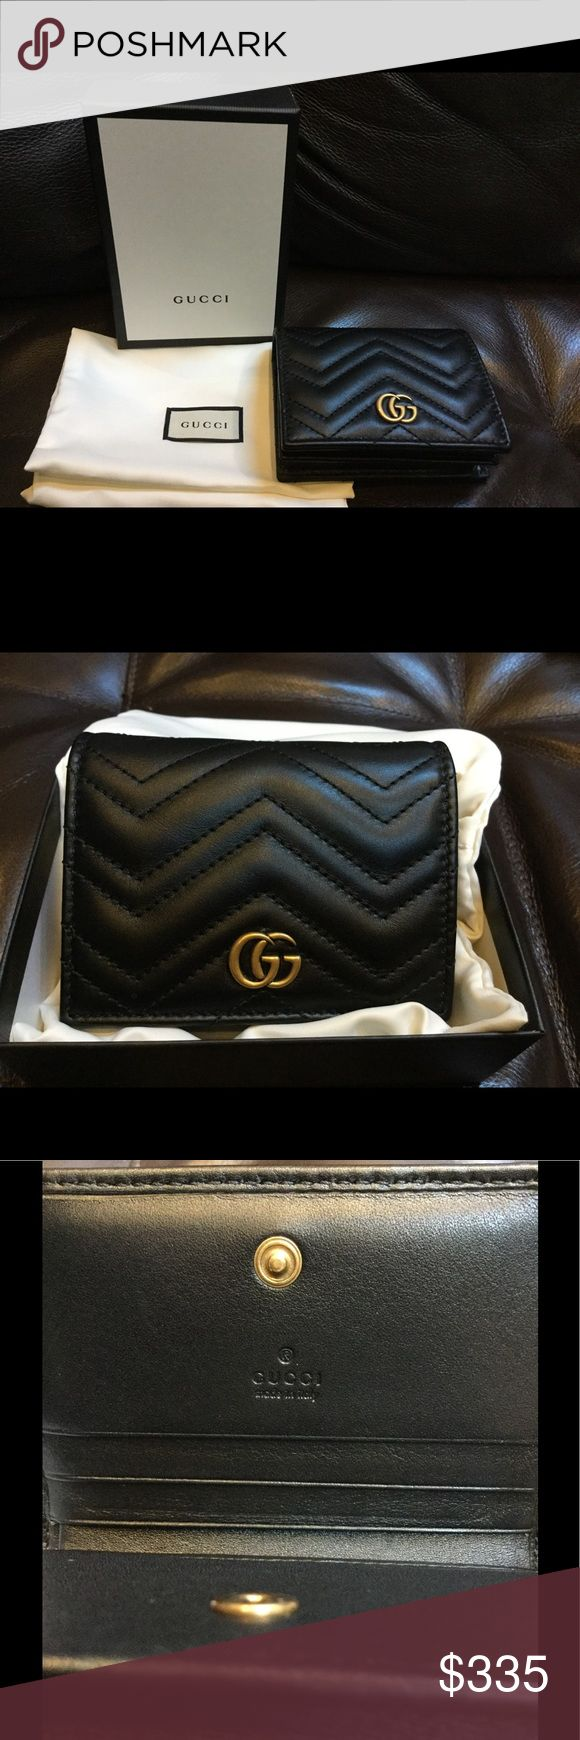 Gucci GG marmont chevron leather card case wallet This authentic Gucci wallet was purchased in Spain, only used for few days, condition is still really good, will come with box and dust bag. !!!NO TRADE!!!      Due to busy schedule, I send packages once a week. Please ask if you cannot wait. Gucci Bags Wallets